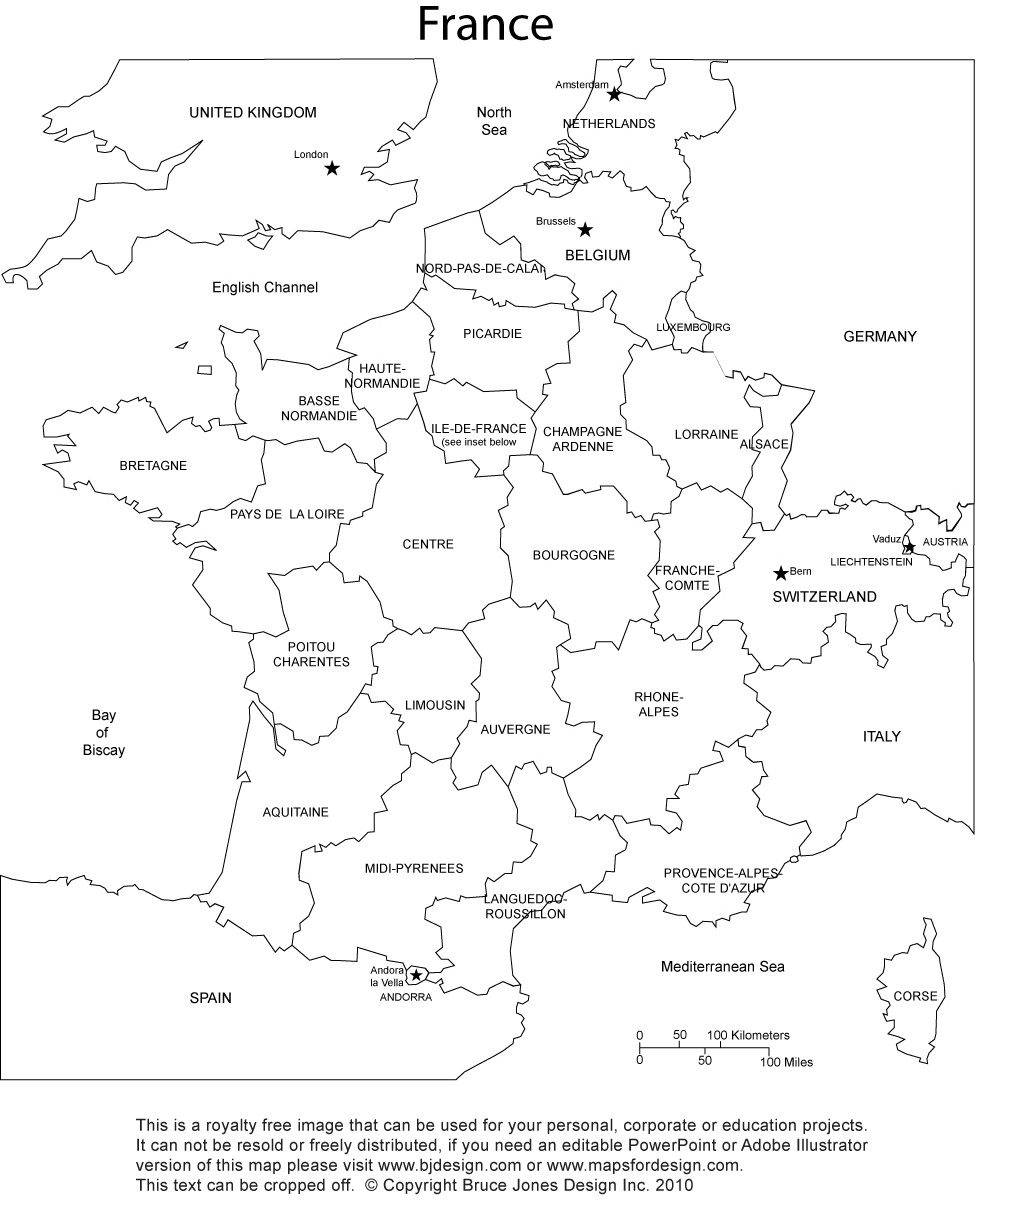 France Map Printable Blank Royalty Free